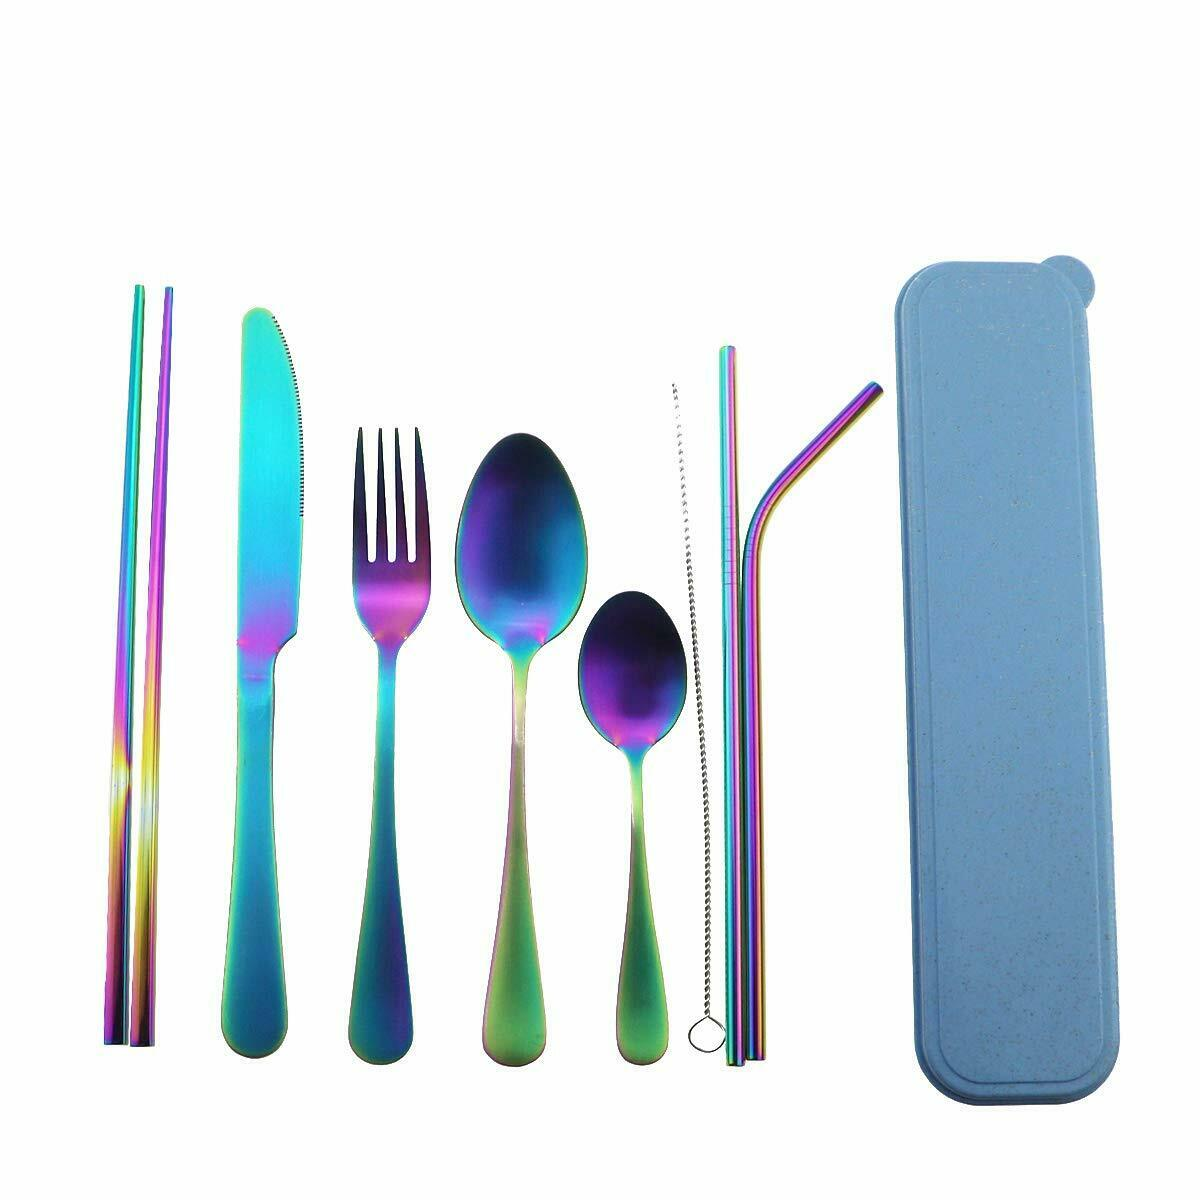 Do Buy Portable Cutlery Set with Case Chopsticks 3 in 1 Spork Black Spoon Fork Knife Set Gift Box 18//10 Stainless Steel